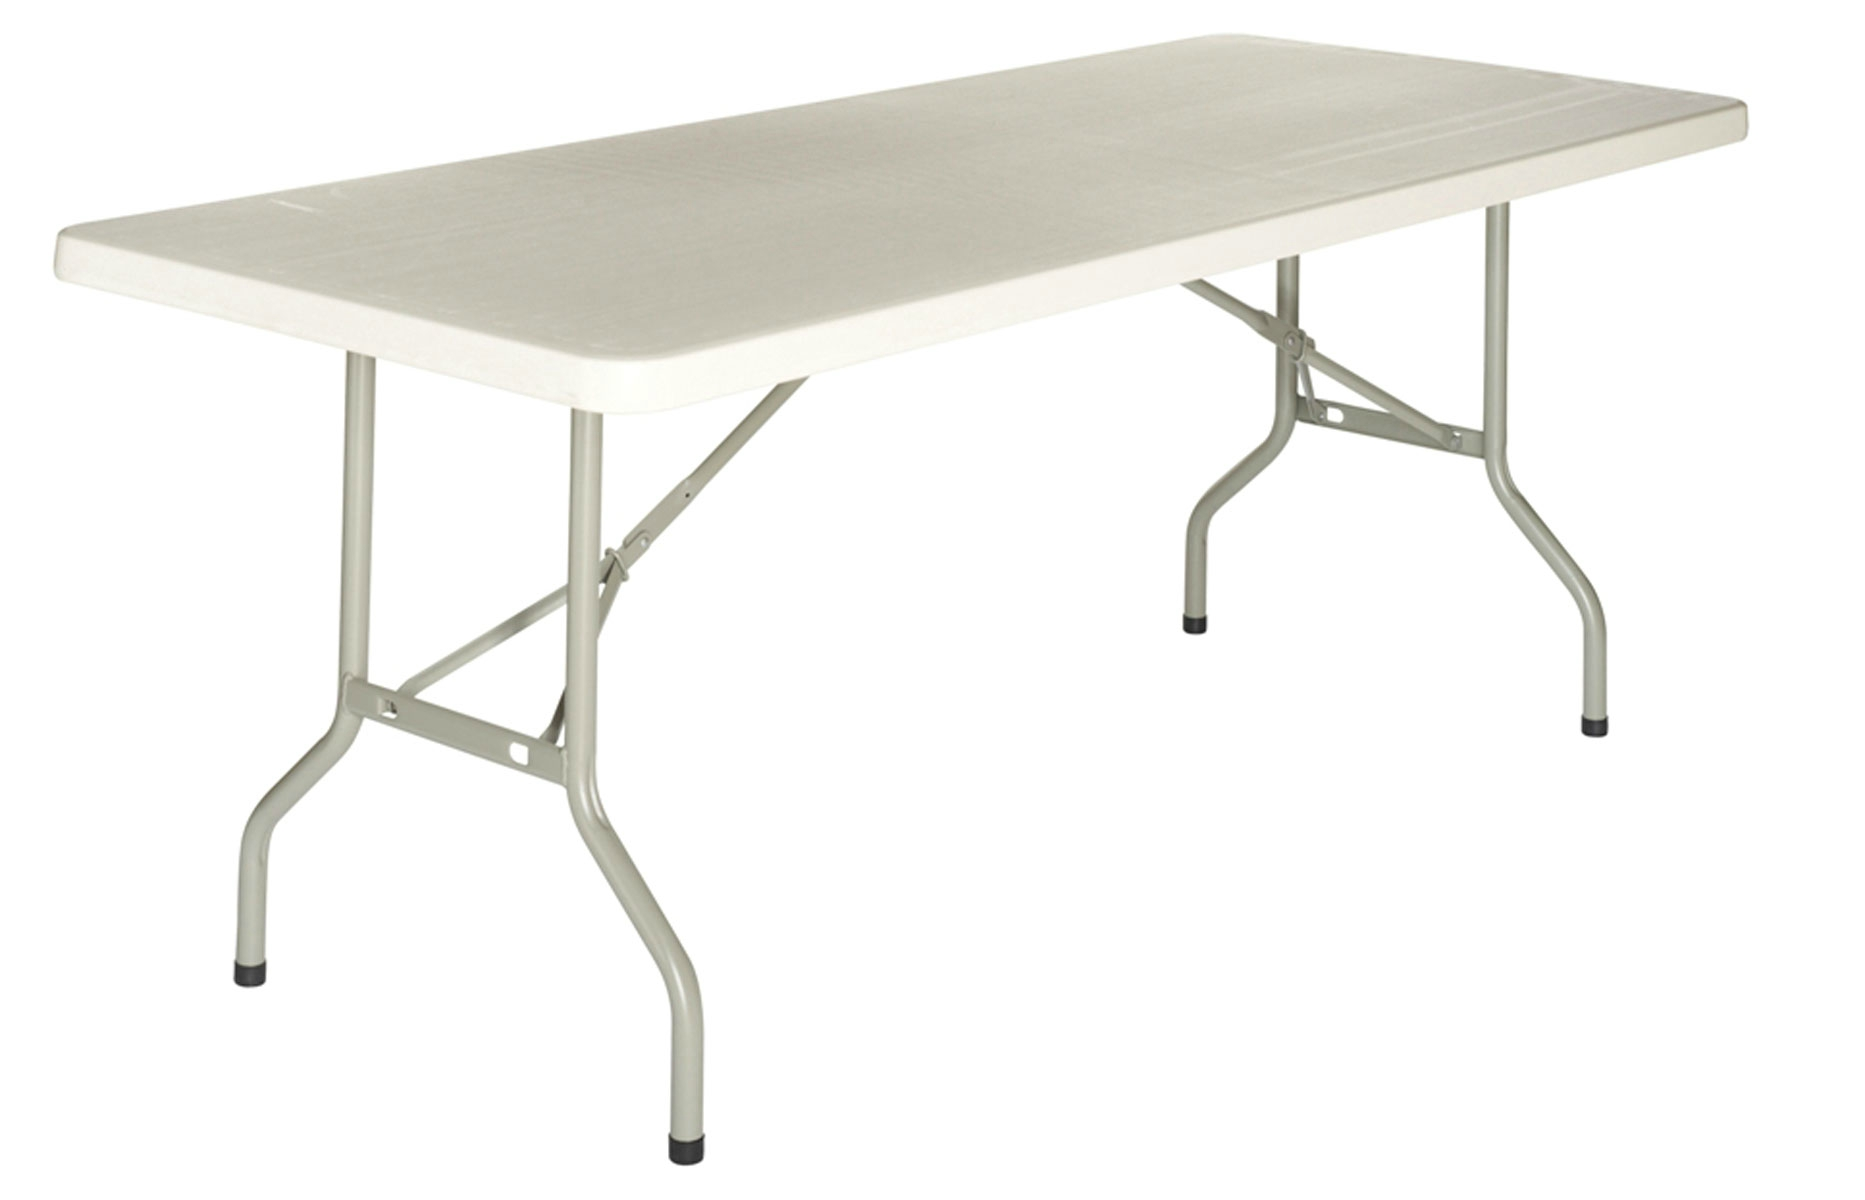 Pied table pliant castorama table de lit - Tables pliantes castorama ...